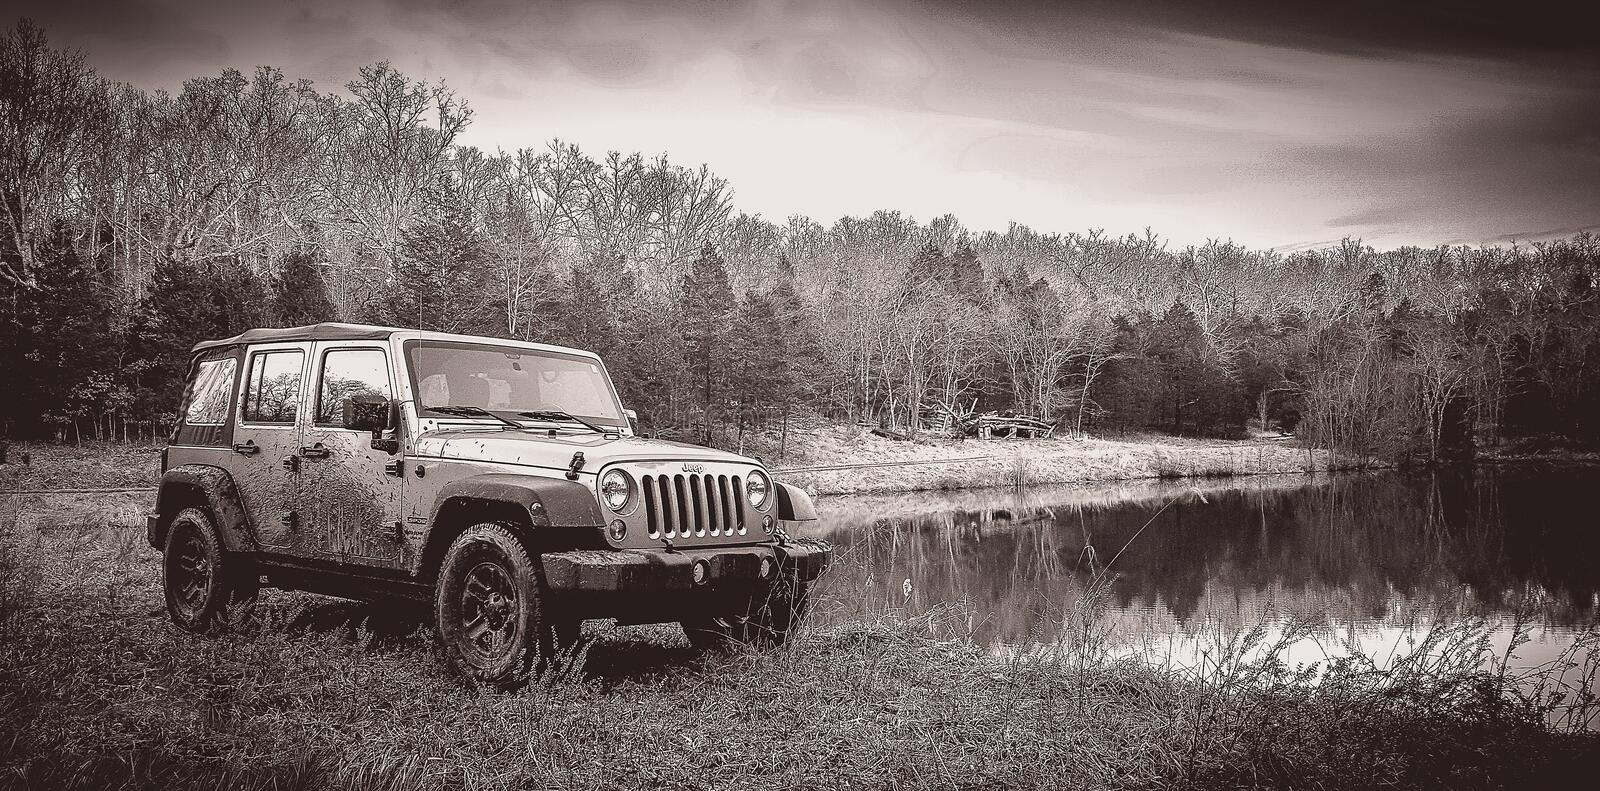 Off-roading in a Jeep Unlimited royalty free stock photos